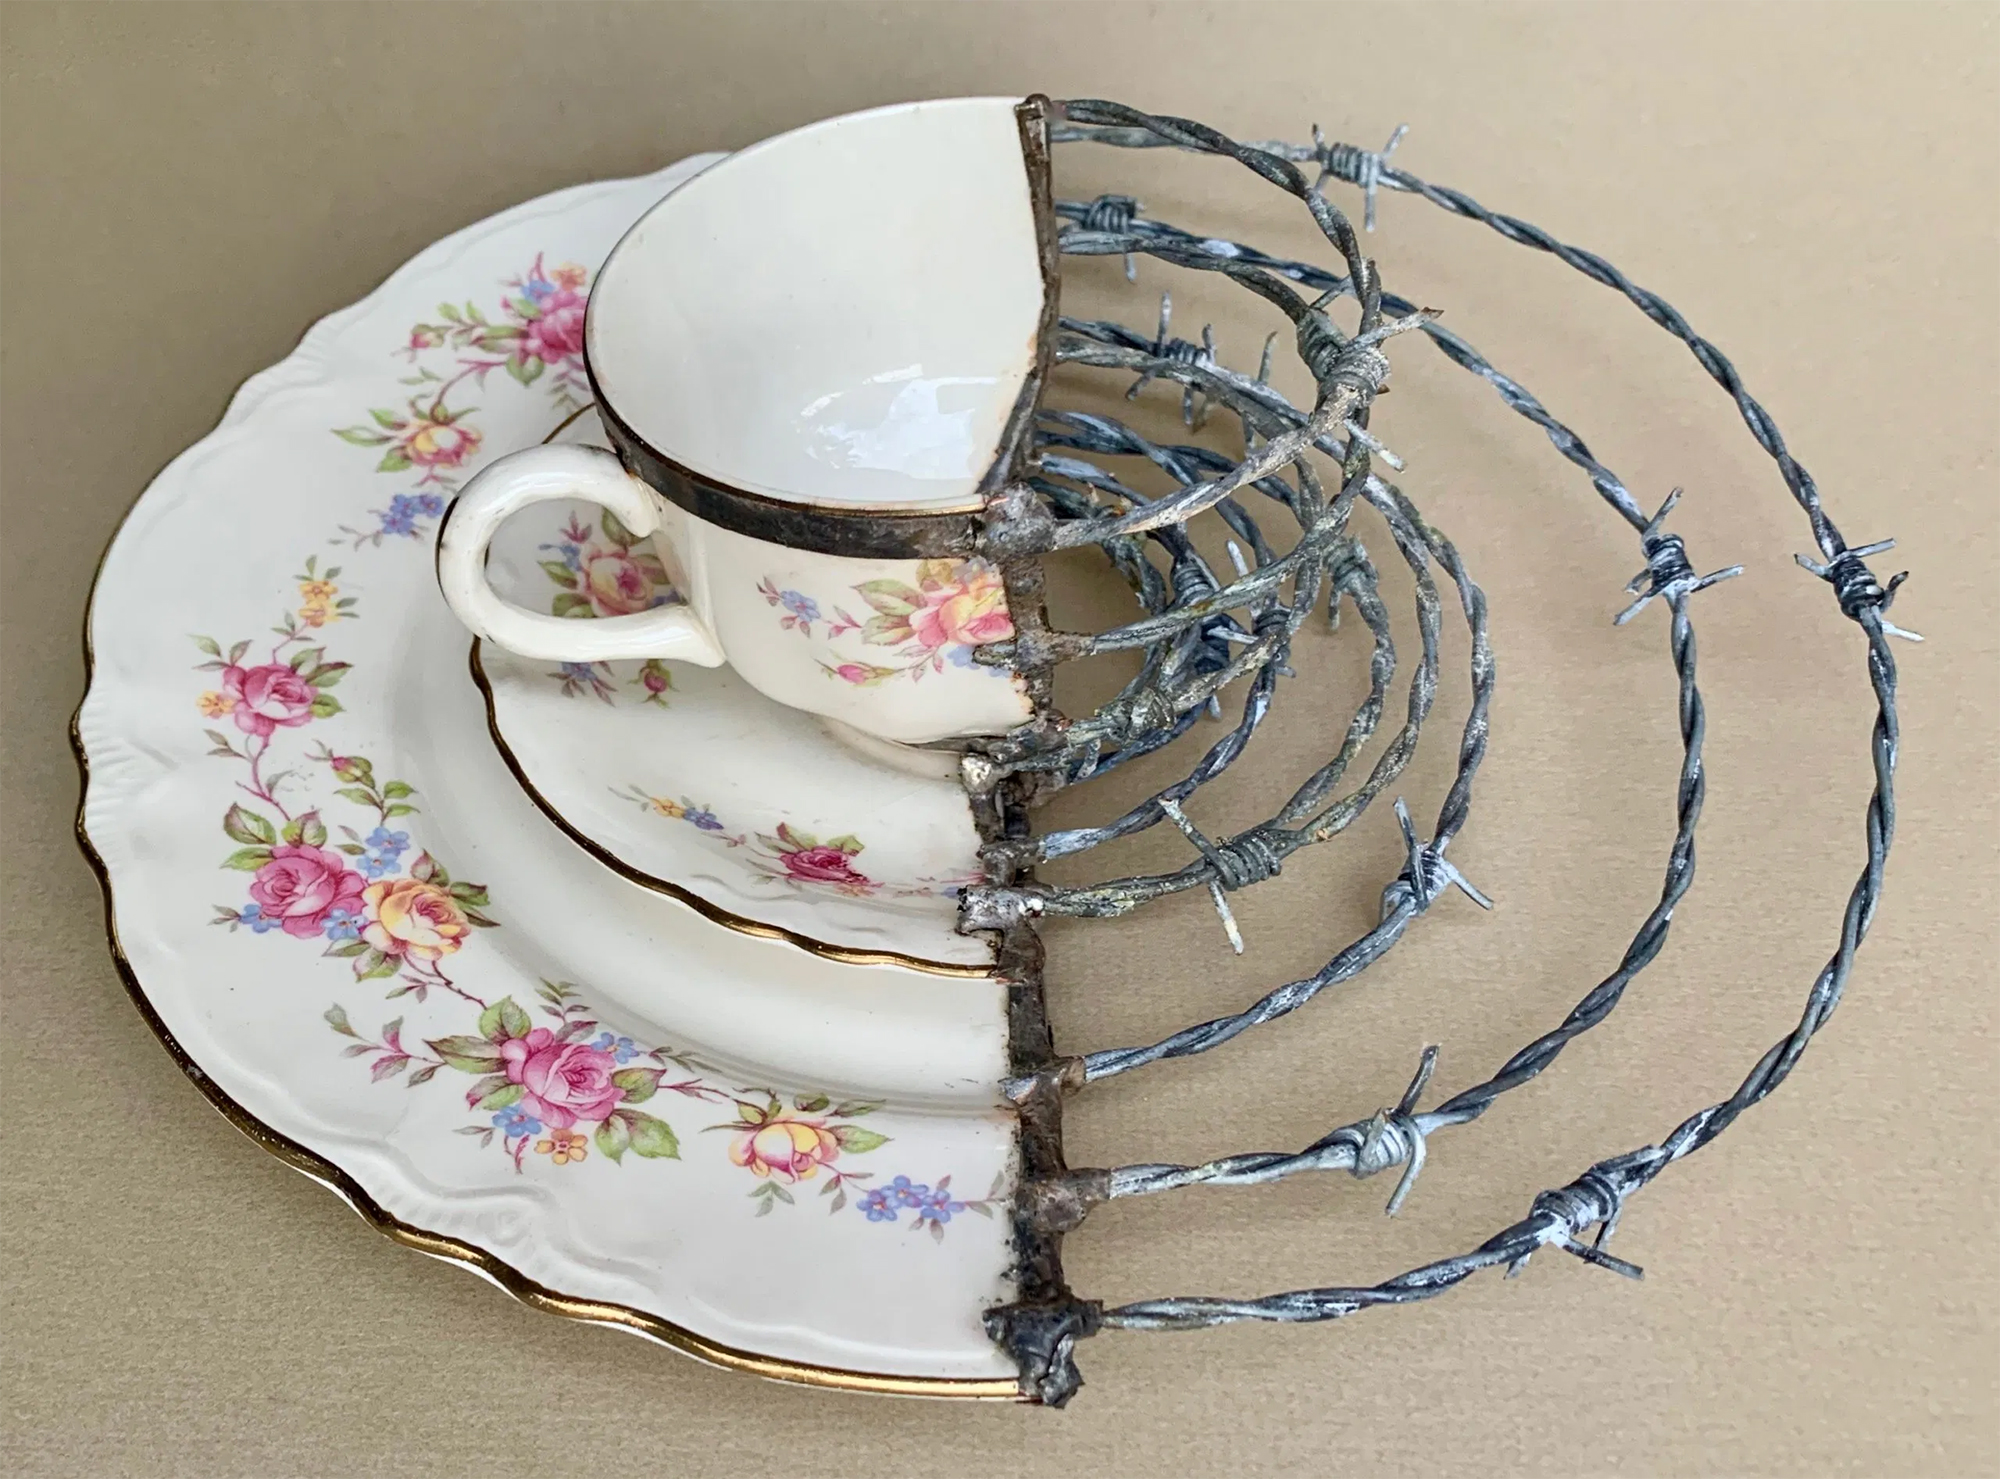 Barbed Wire Rusty Knives And Found Objects Mend Artist Glen Taylor S Broken Porcelain Colossal